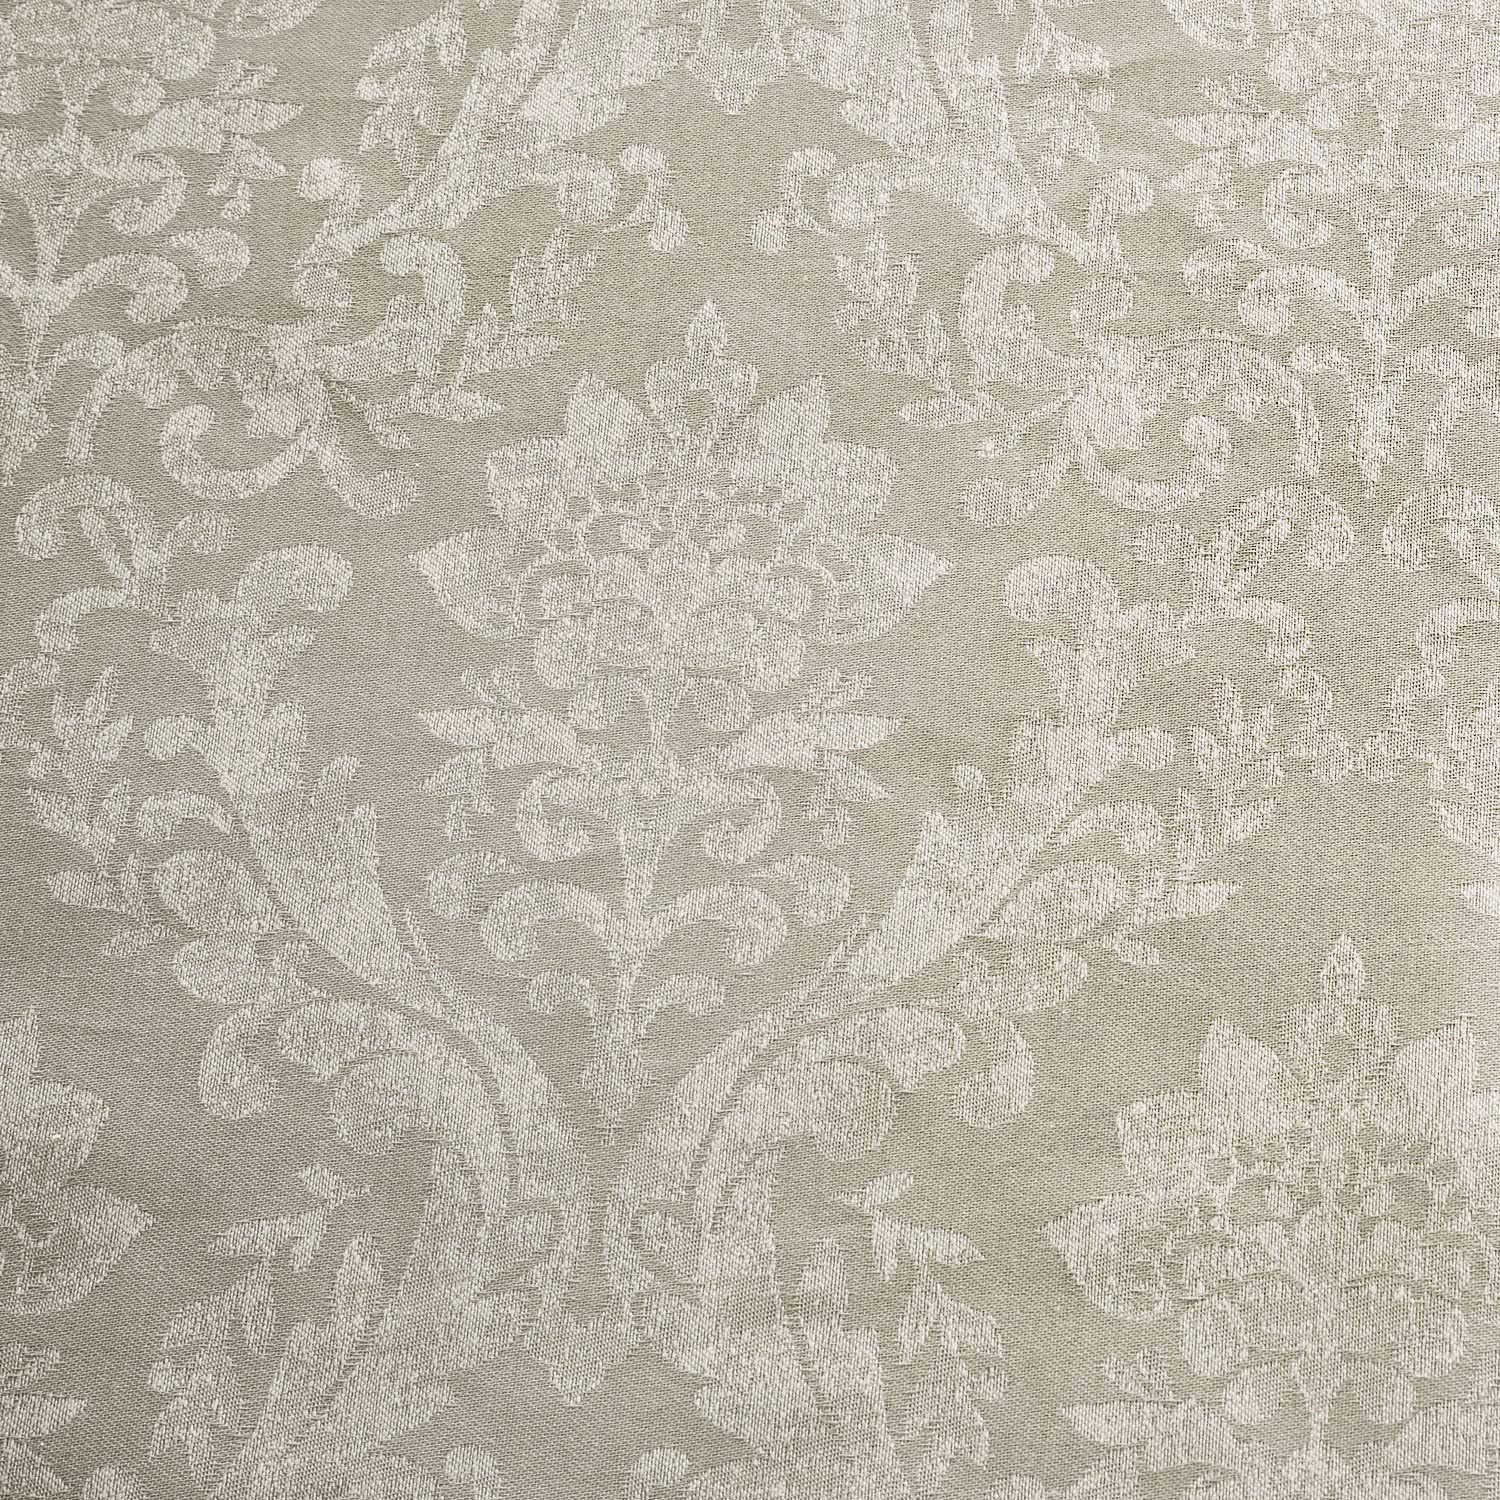 Serene Silver Damask Jacquard Lined Pencil Curtains with Tie-backs 168 x 183cm Laurent 66 Width x 72 Drop